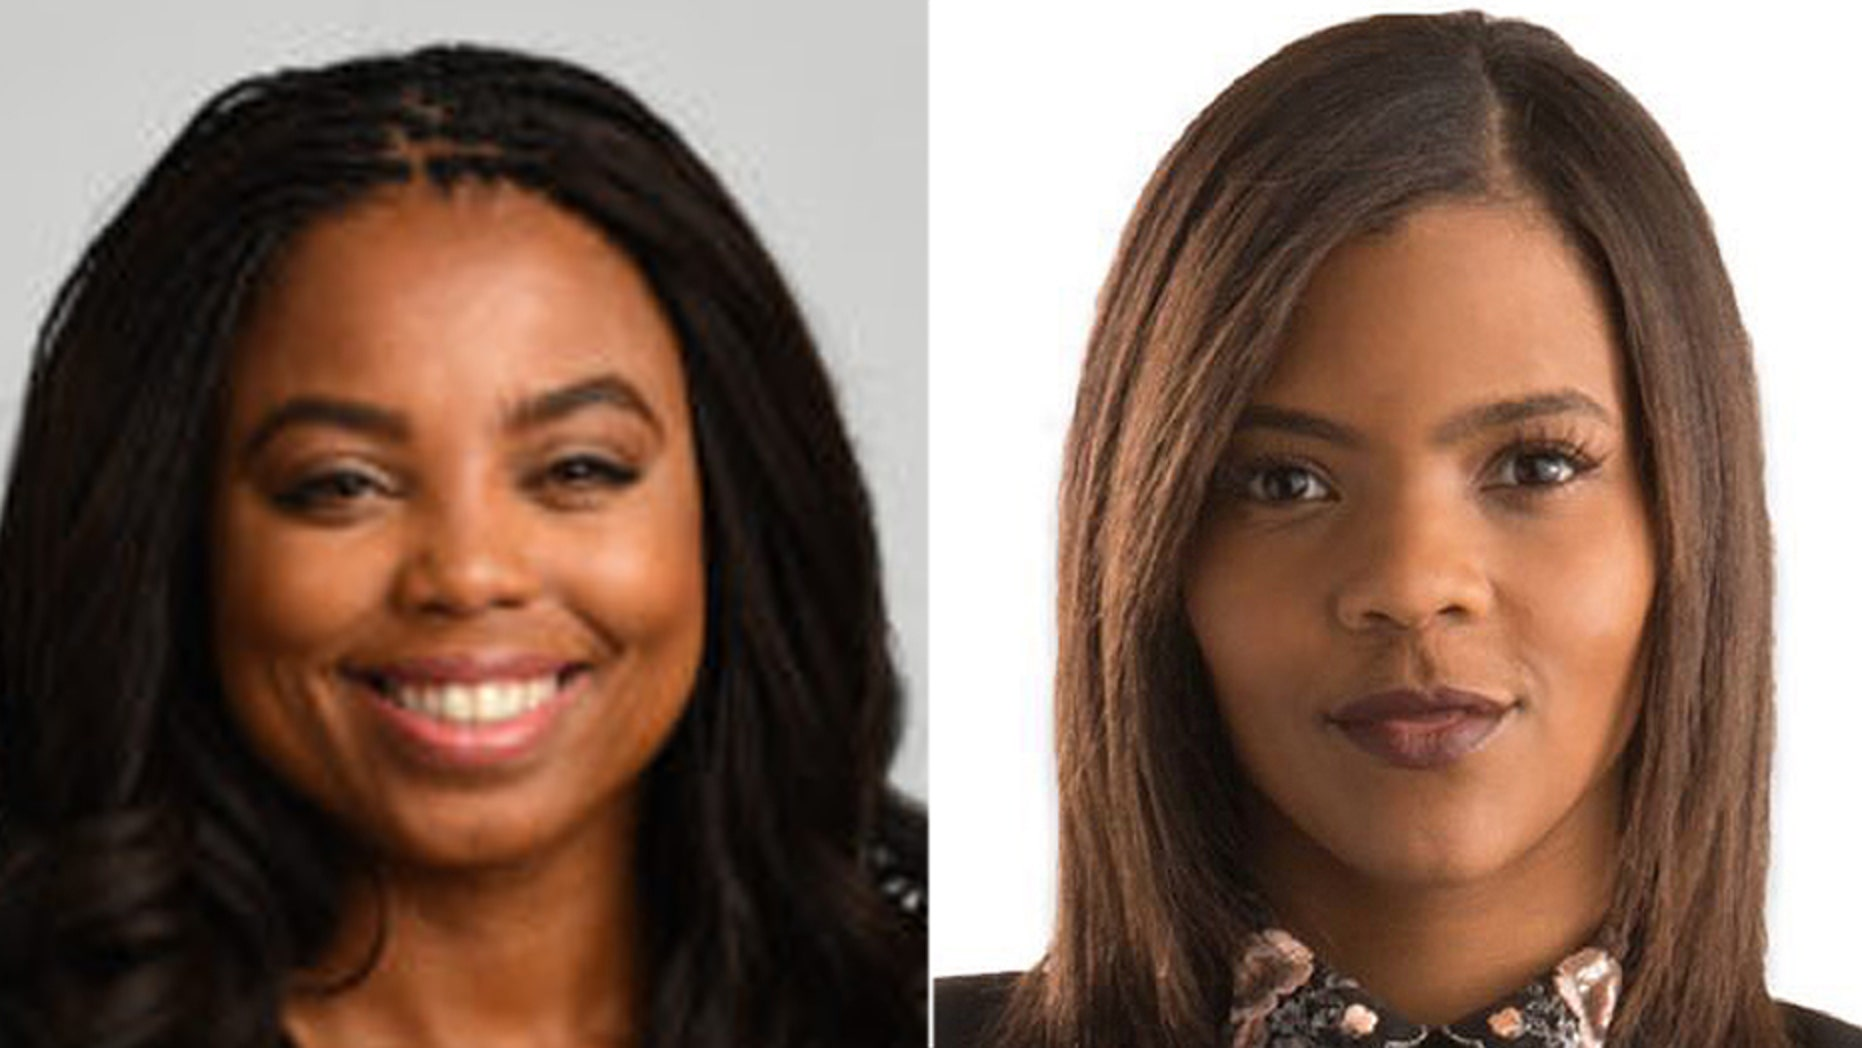 ESPN's Jemele Hill, left, was challenged by Turning Point USA communications director Candace Owens to a debate.